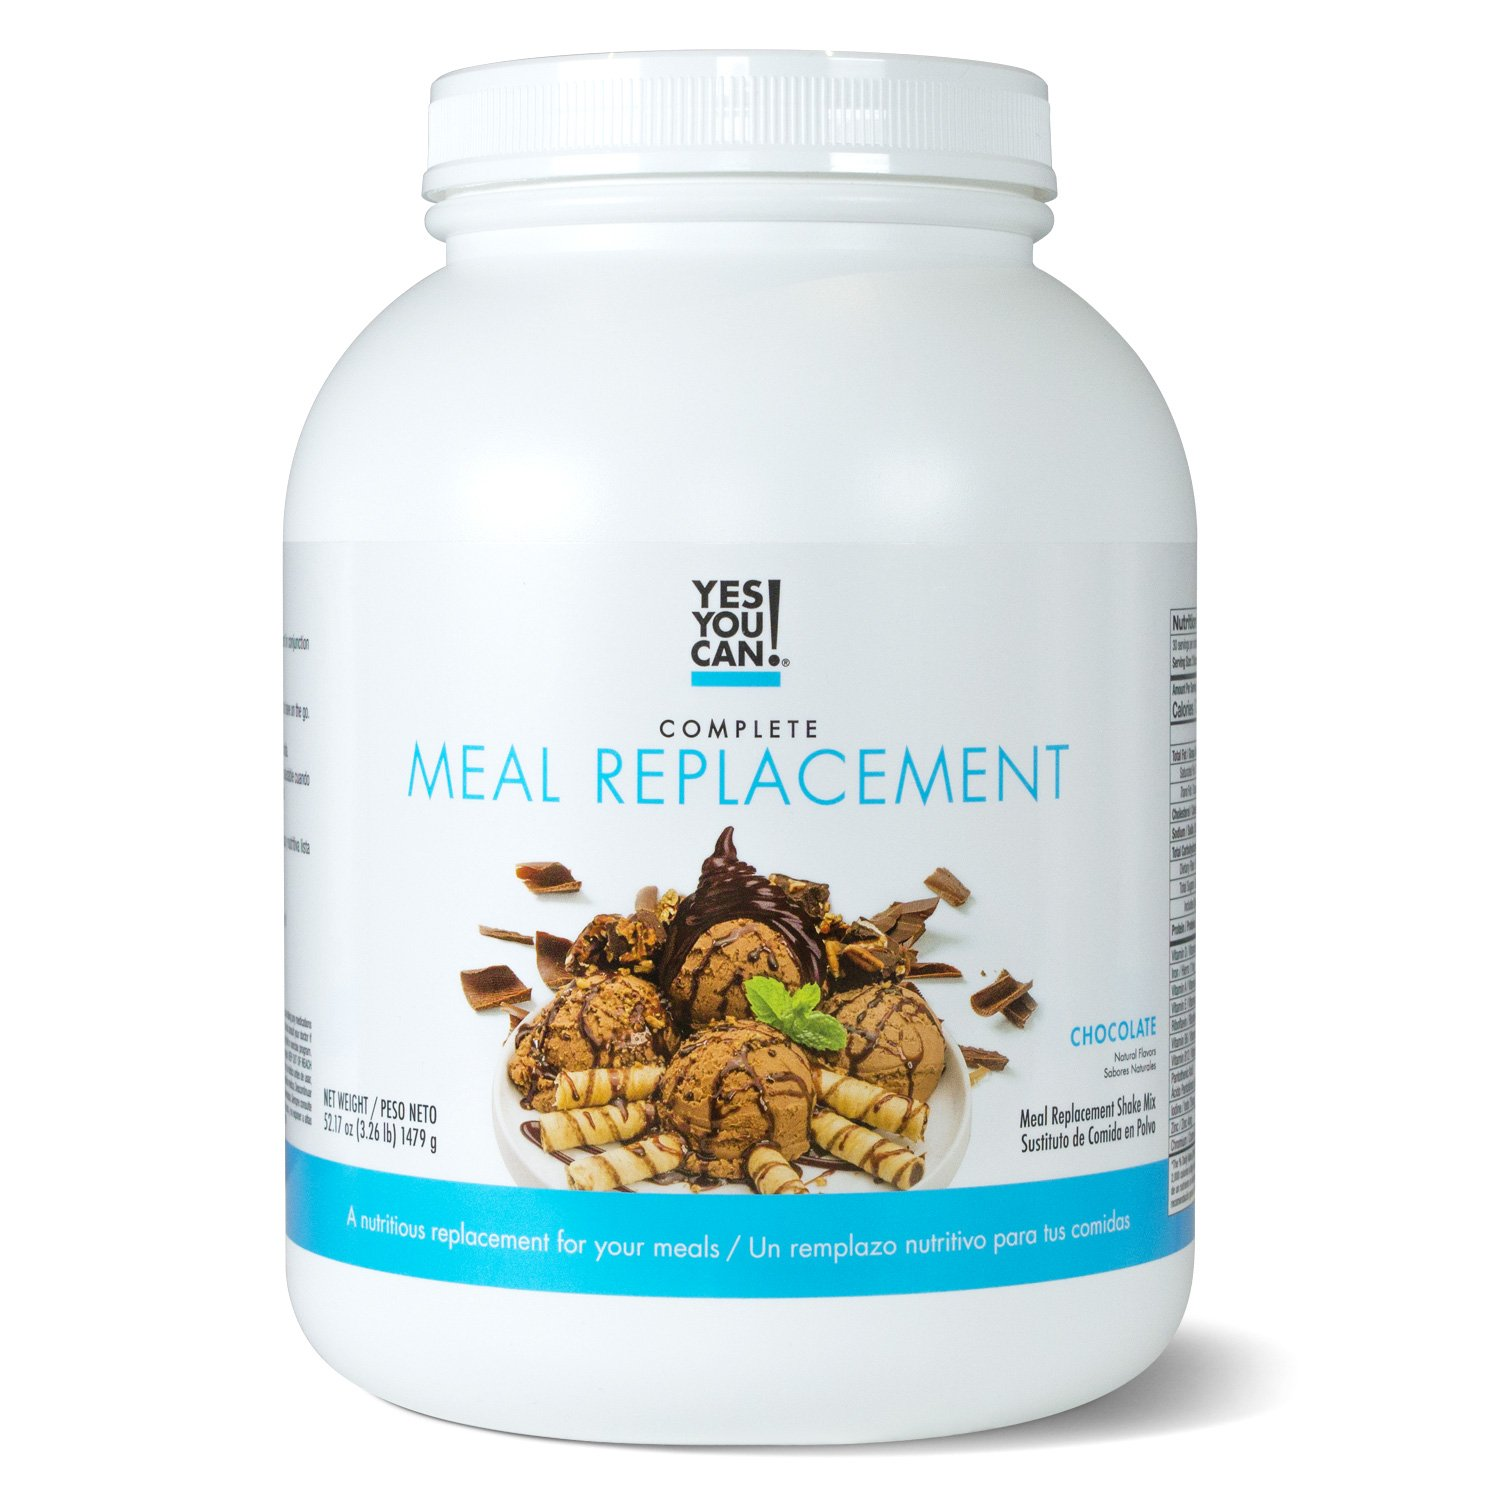 Yes You Can! Complete Meal Replacement, Up to 2 Meals a Day, Helps Lose Weight - Sustituto de Comida Completo con Proteína para Perder Peso 30 Servings, 3.26 Lb, Chocolate Flavor